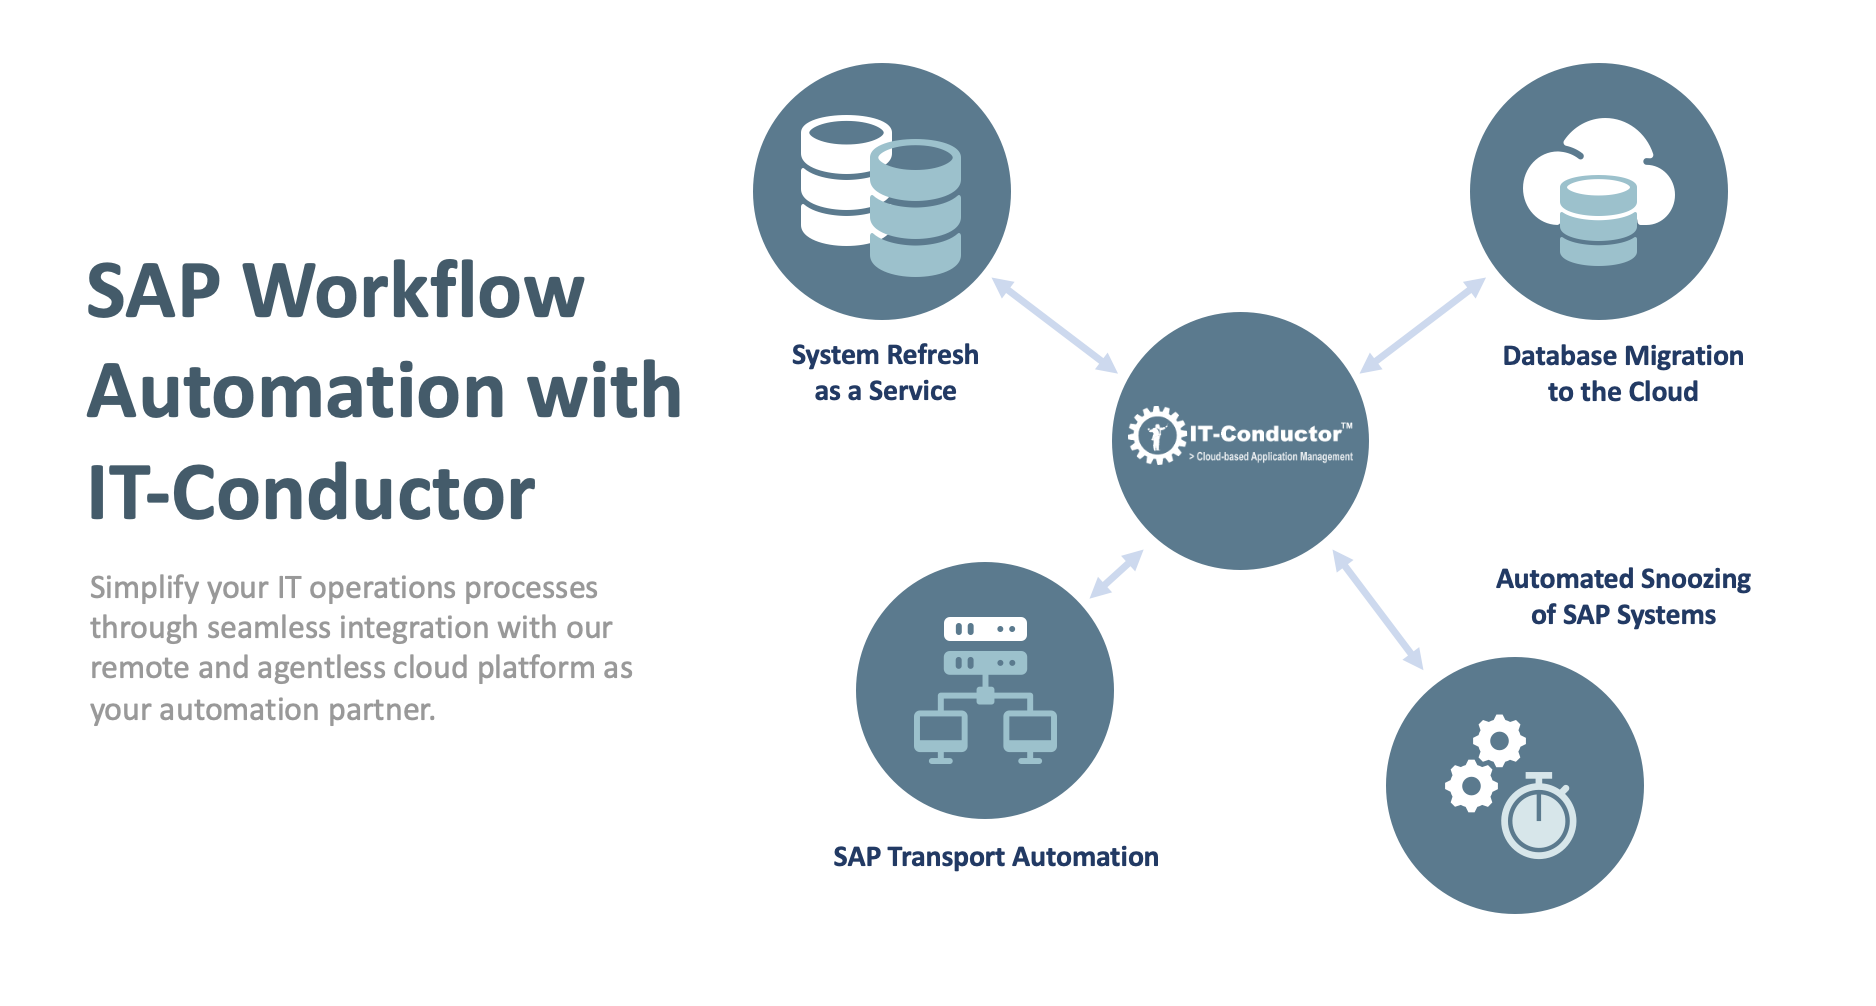 SAP Workflow Automation with IT-Conductor